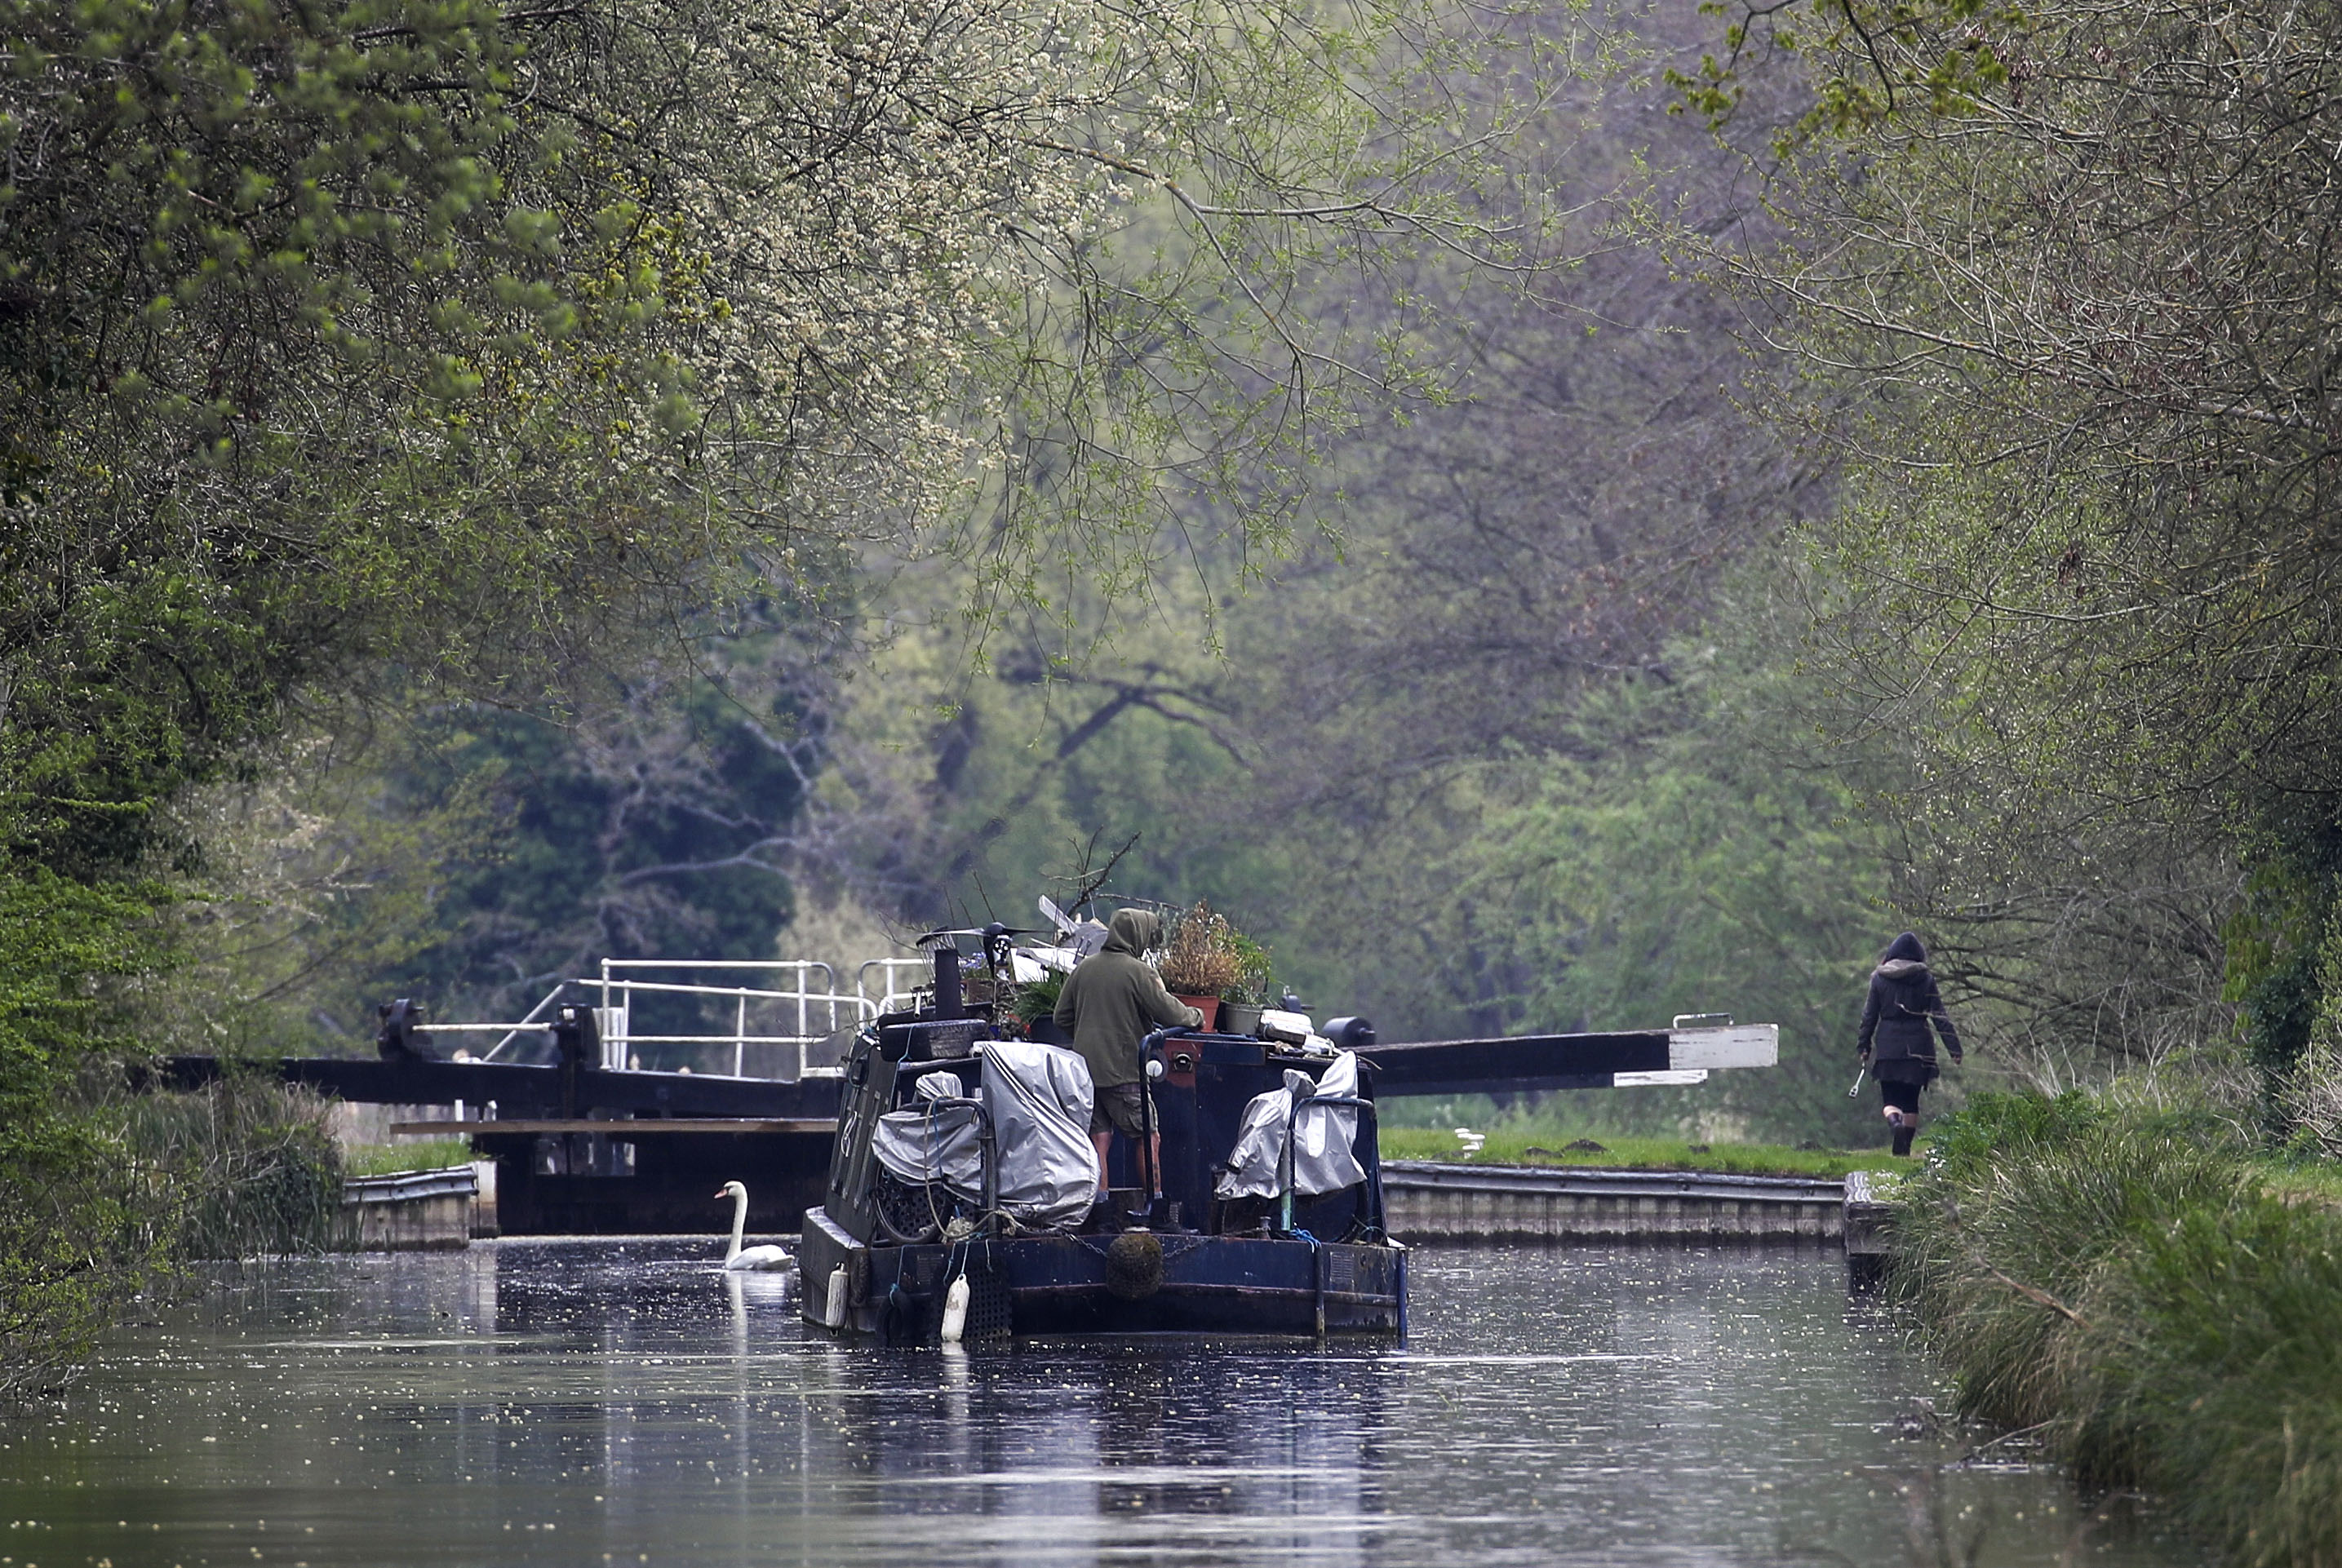 <p>A canal boat travels in the rain along the River Kennet near Theale, Berkshire. Picture date: Wednesday April 28, 2021.</p>